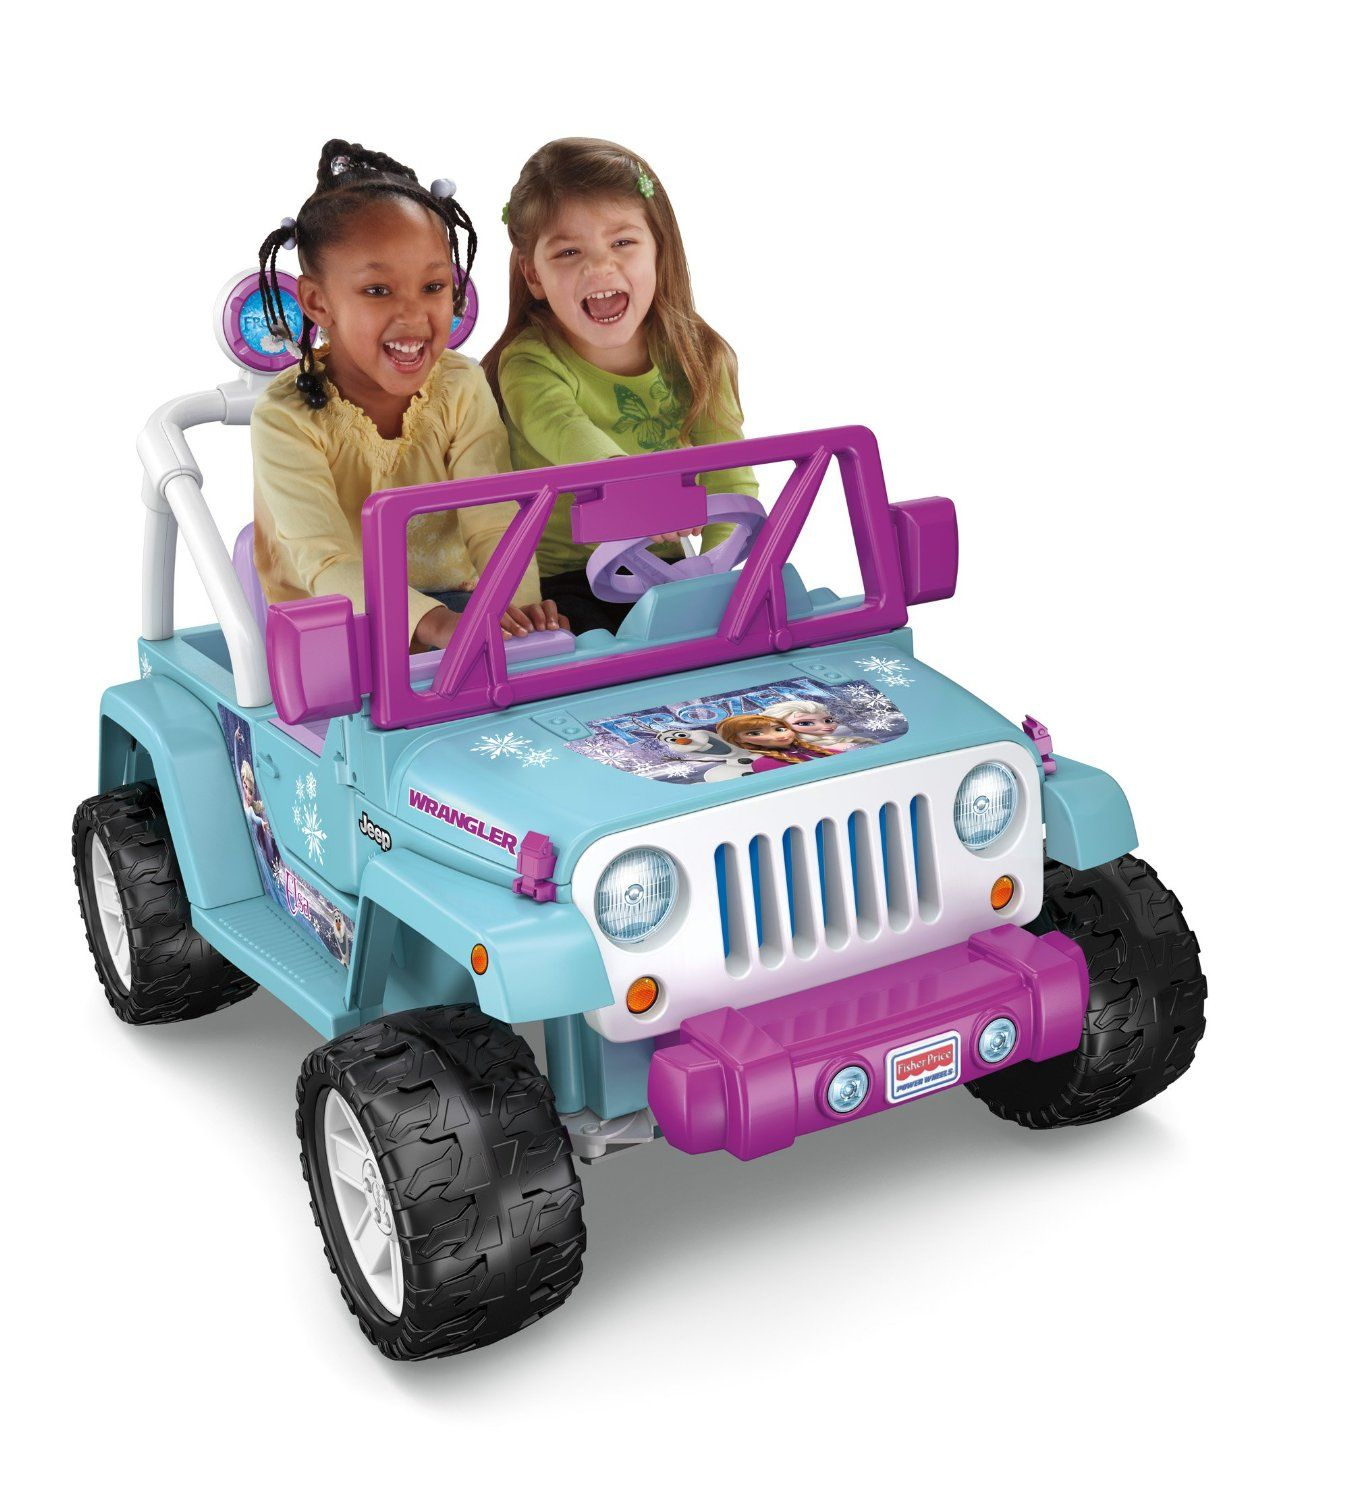 Jeep toys for kids   Best Power Wheels Cars for Girls  Ride On Cars for Kids